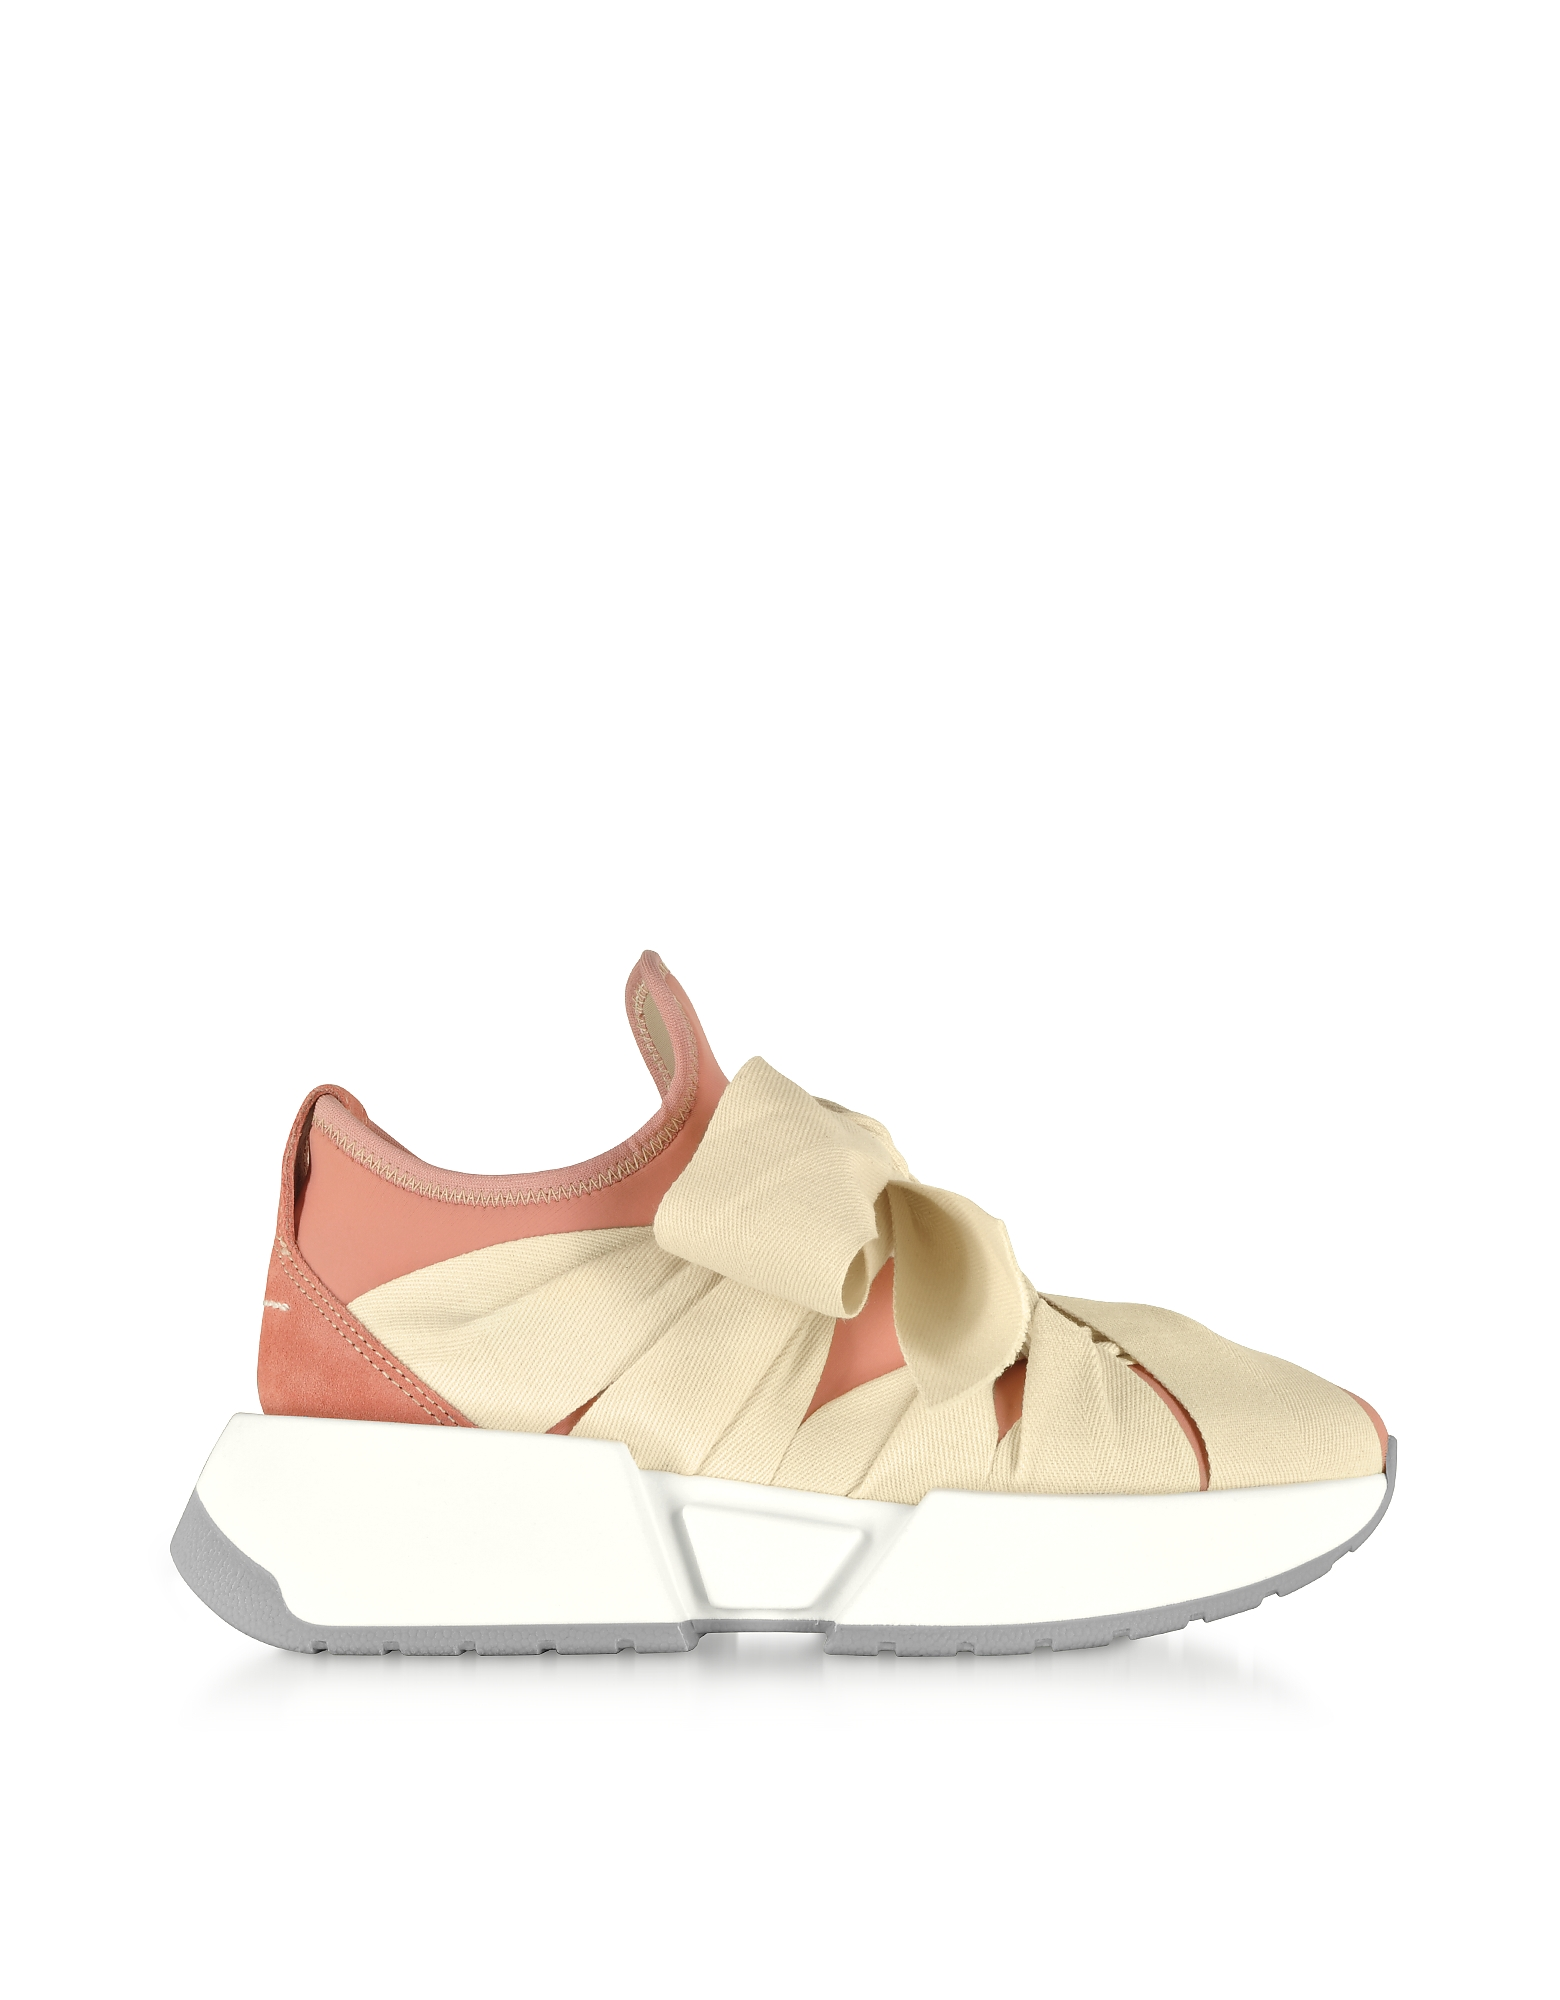 MM6 Maison Martin Margiela Designer Shoes, Ribbon Tied Sneakers